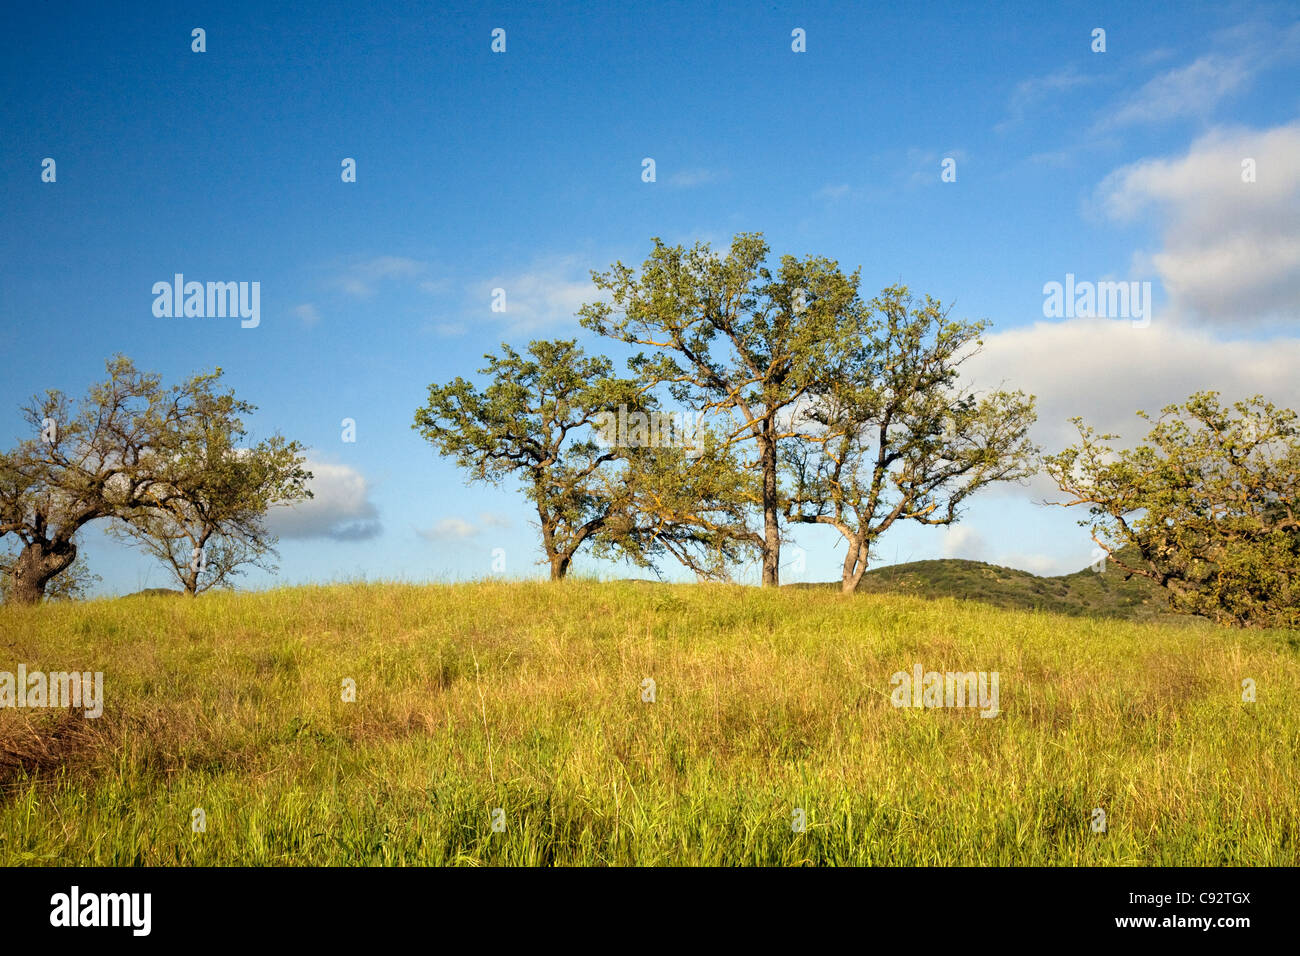 CALIFORNIA - Oak trees growing in the Paramount Ranch area of the Santa Monica Mountains National Recreation Area. - Stock Image